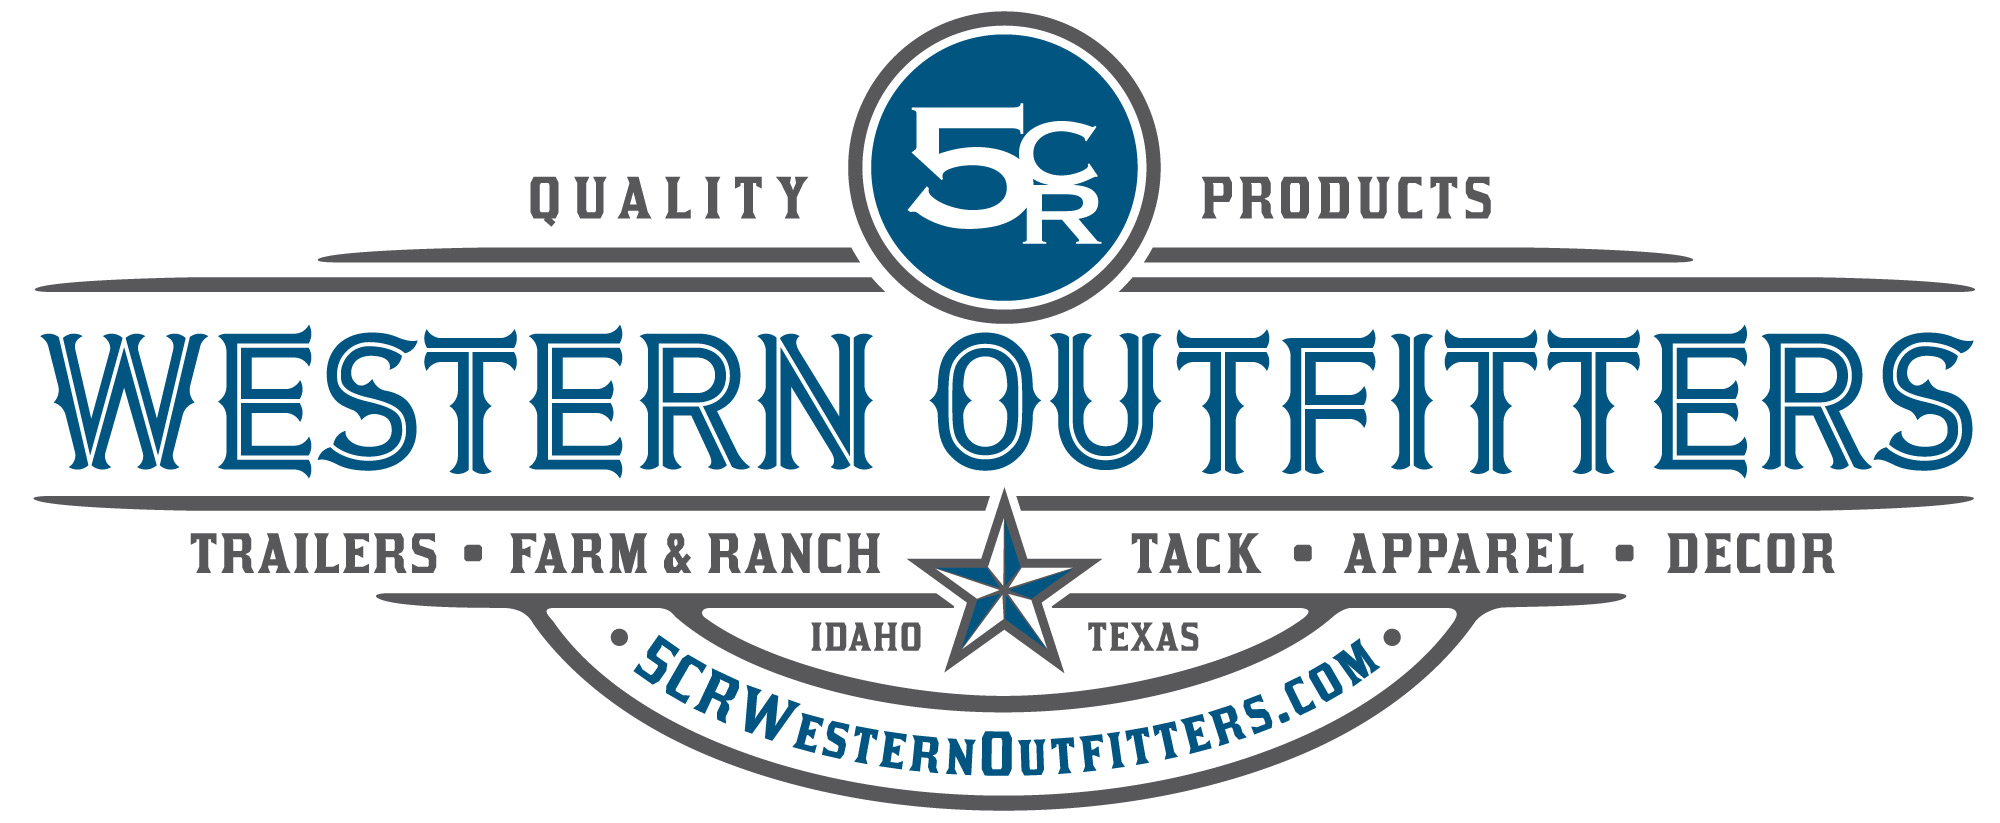 5CR Western Outfitters | Your Source for Western Goods